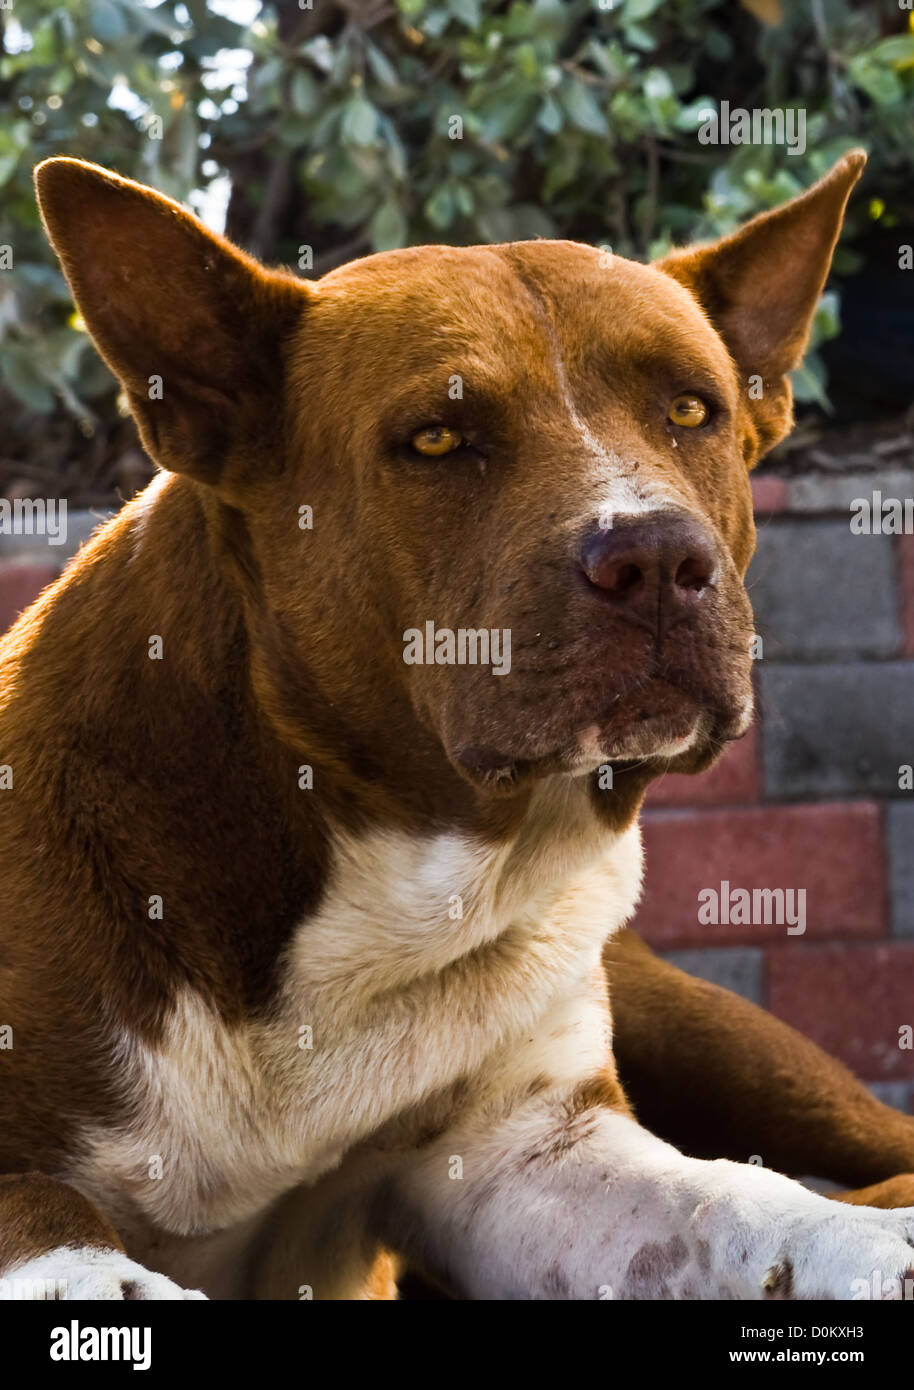 An island dog all laid back in the morning sun. - Stock Image